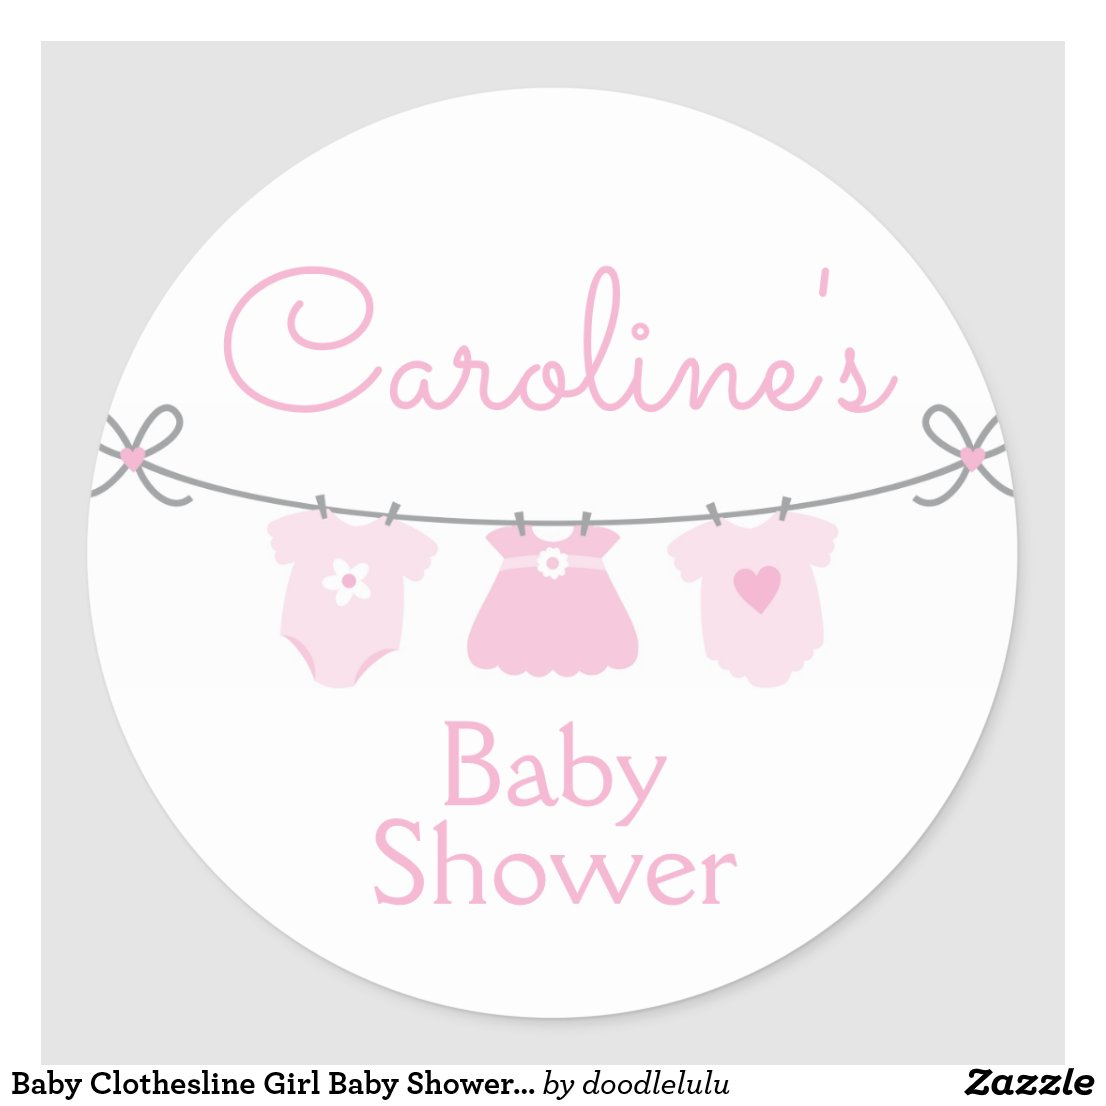 Baby Clothesline Girl Baby Shower Sticker, Pink Classic Round Sticker